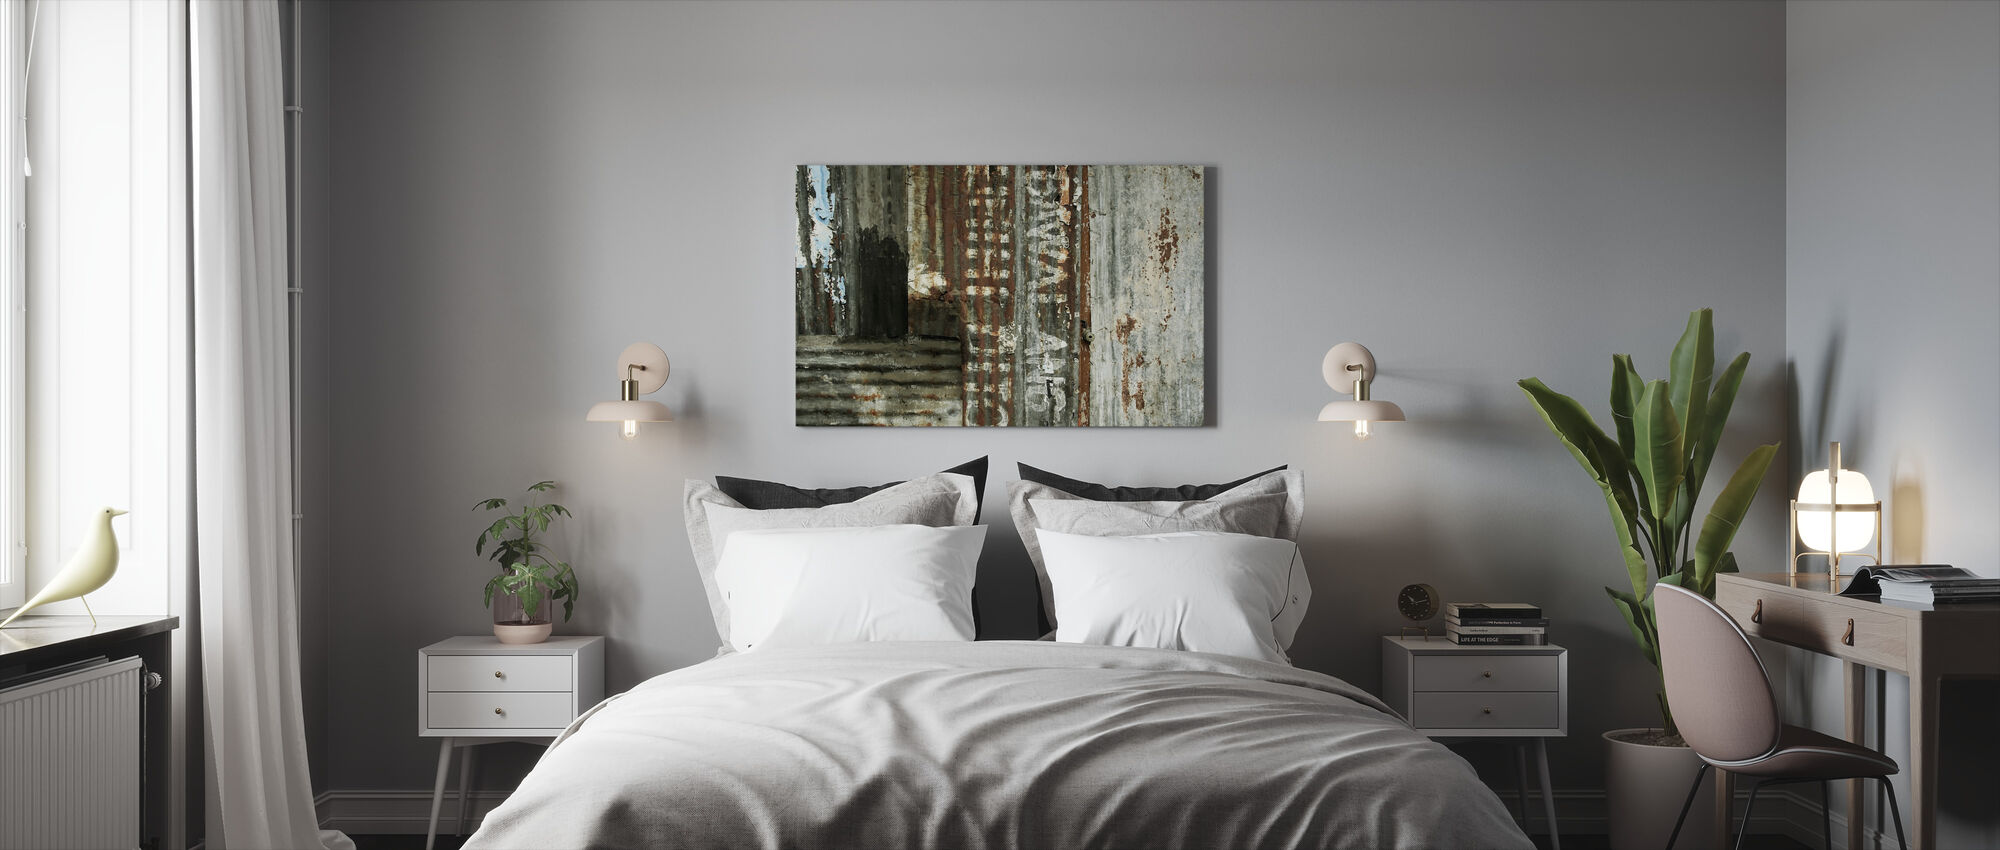 Corrugated Iron Sheeting - Canvas print - Bedroom